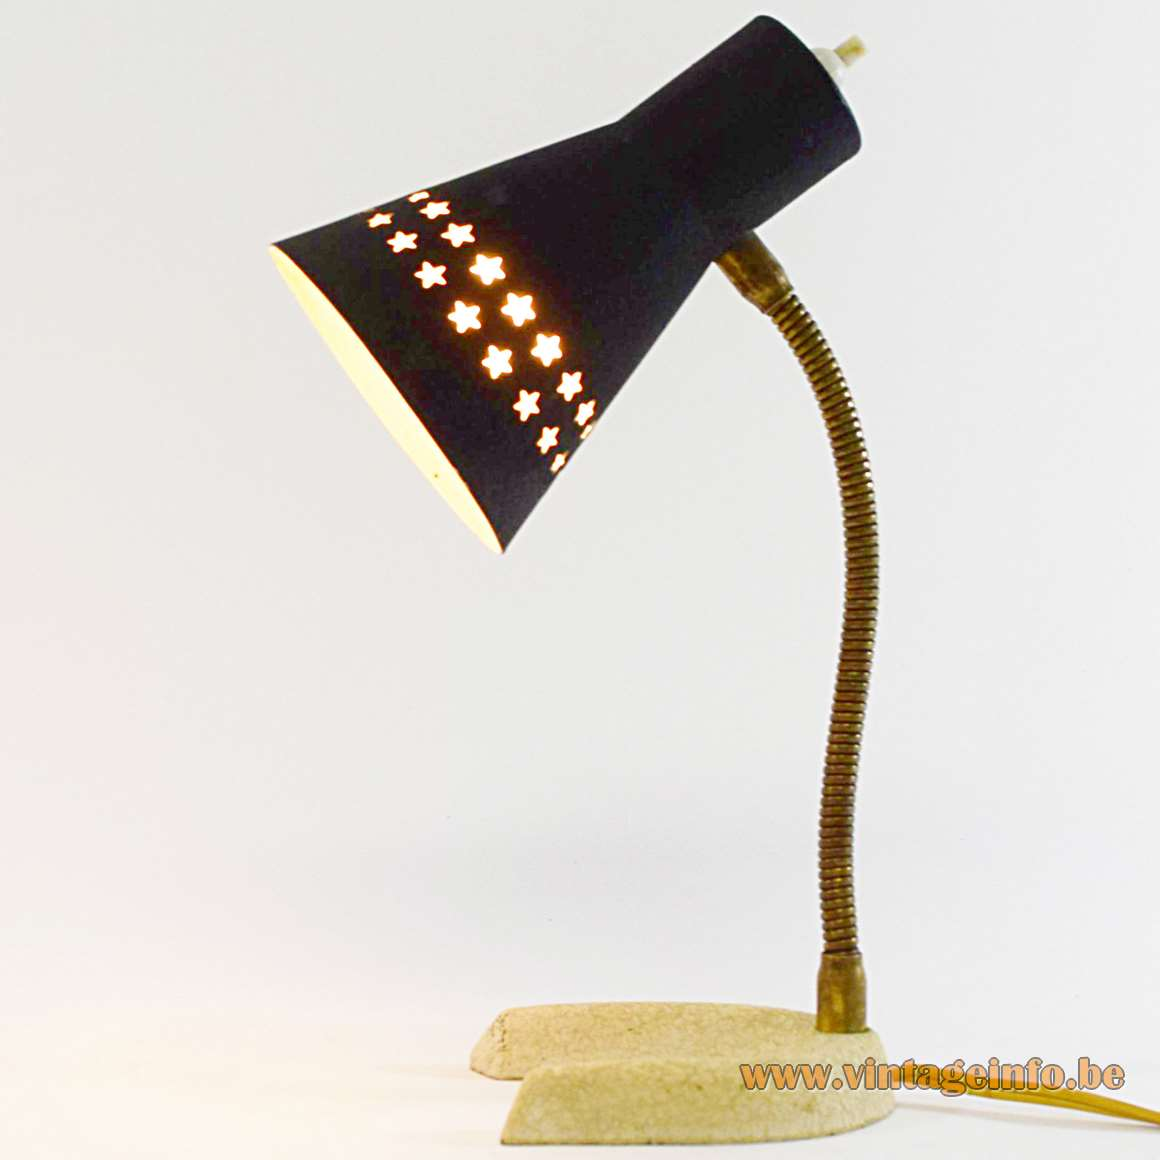 Perforated five-pointed stars desk lamp 1950s 1960s brass gooseneck aluminium lampshade wrinklepaint MCM Italy